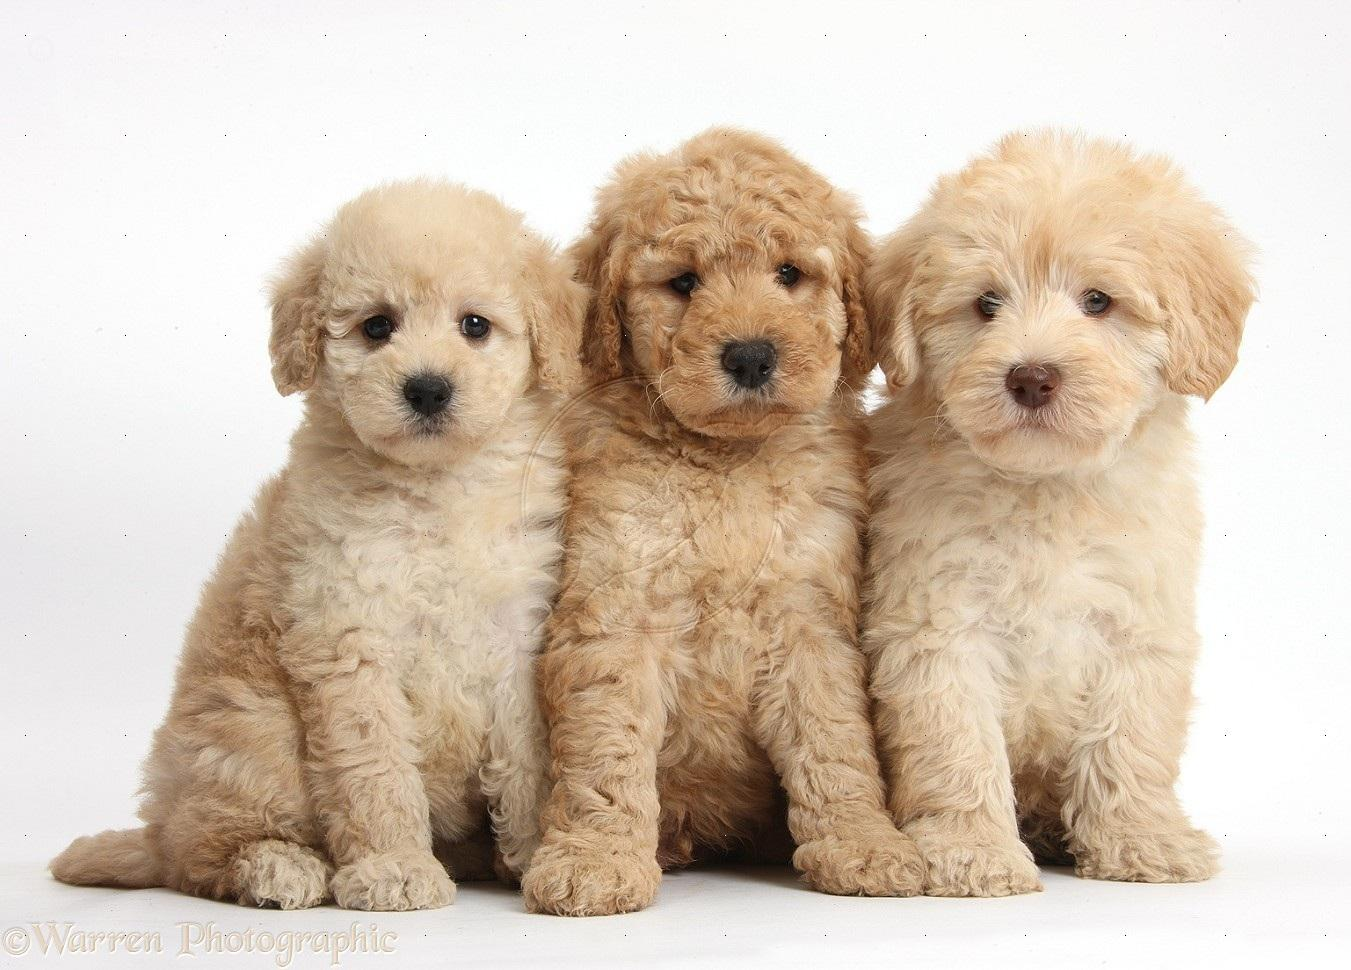 Everything You Need to Know About the Goldendoodles!